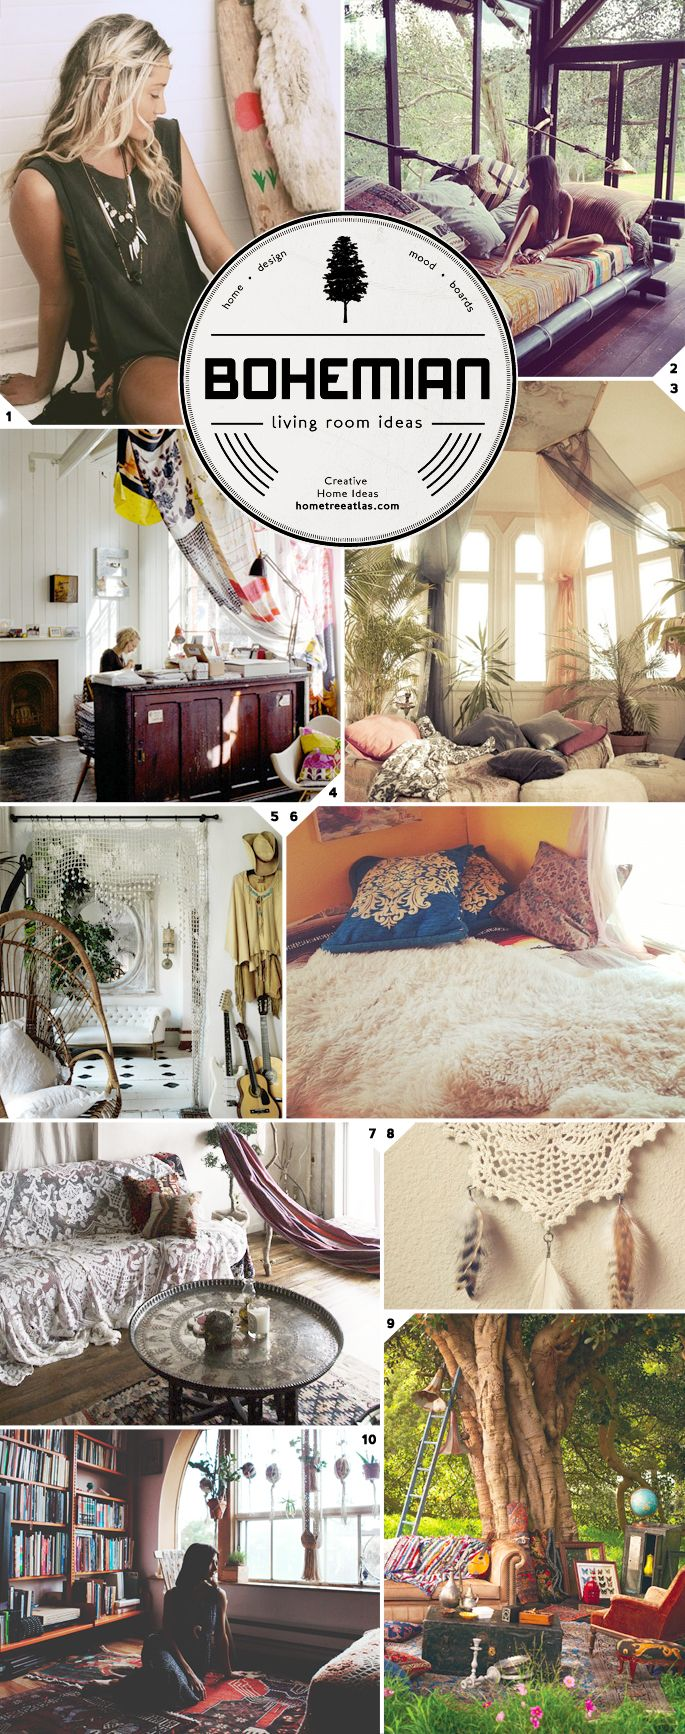 boho room ideas | The Free Spirit: Bohemian Living Room Ideas | Home Tree Atlas